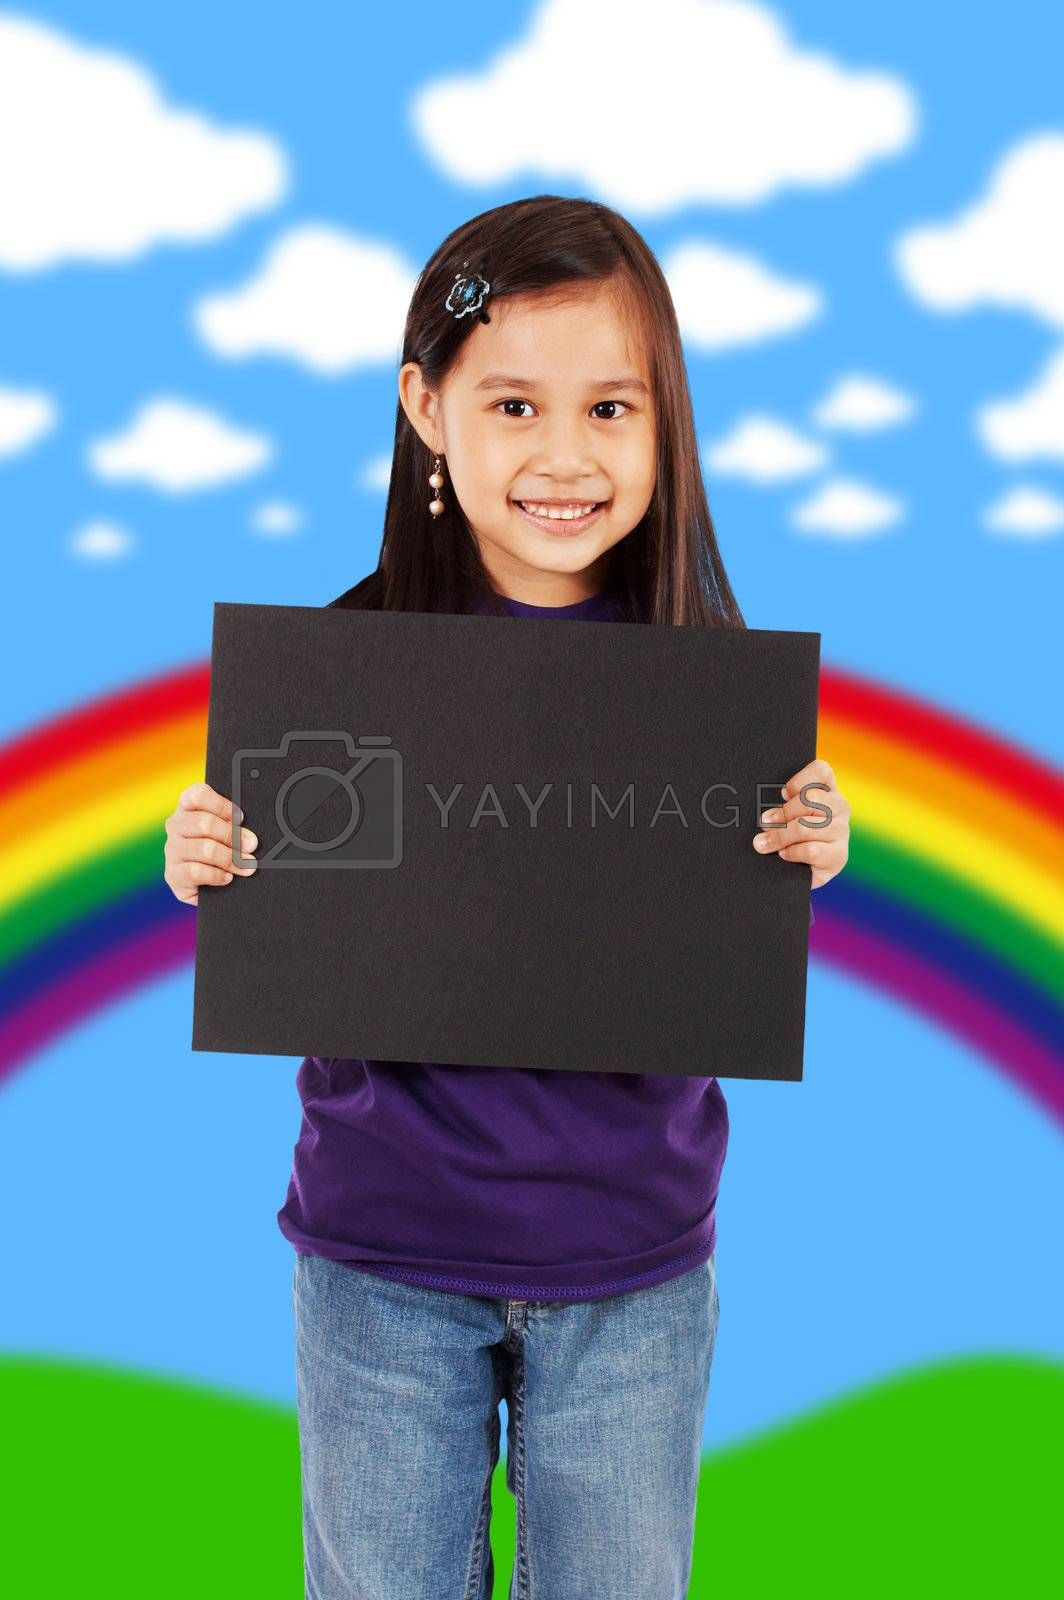 A Smiling Girl Holding A Blank Black Board With An Abstract Rainbow And Clouds Background